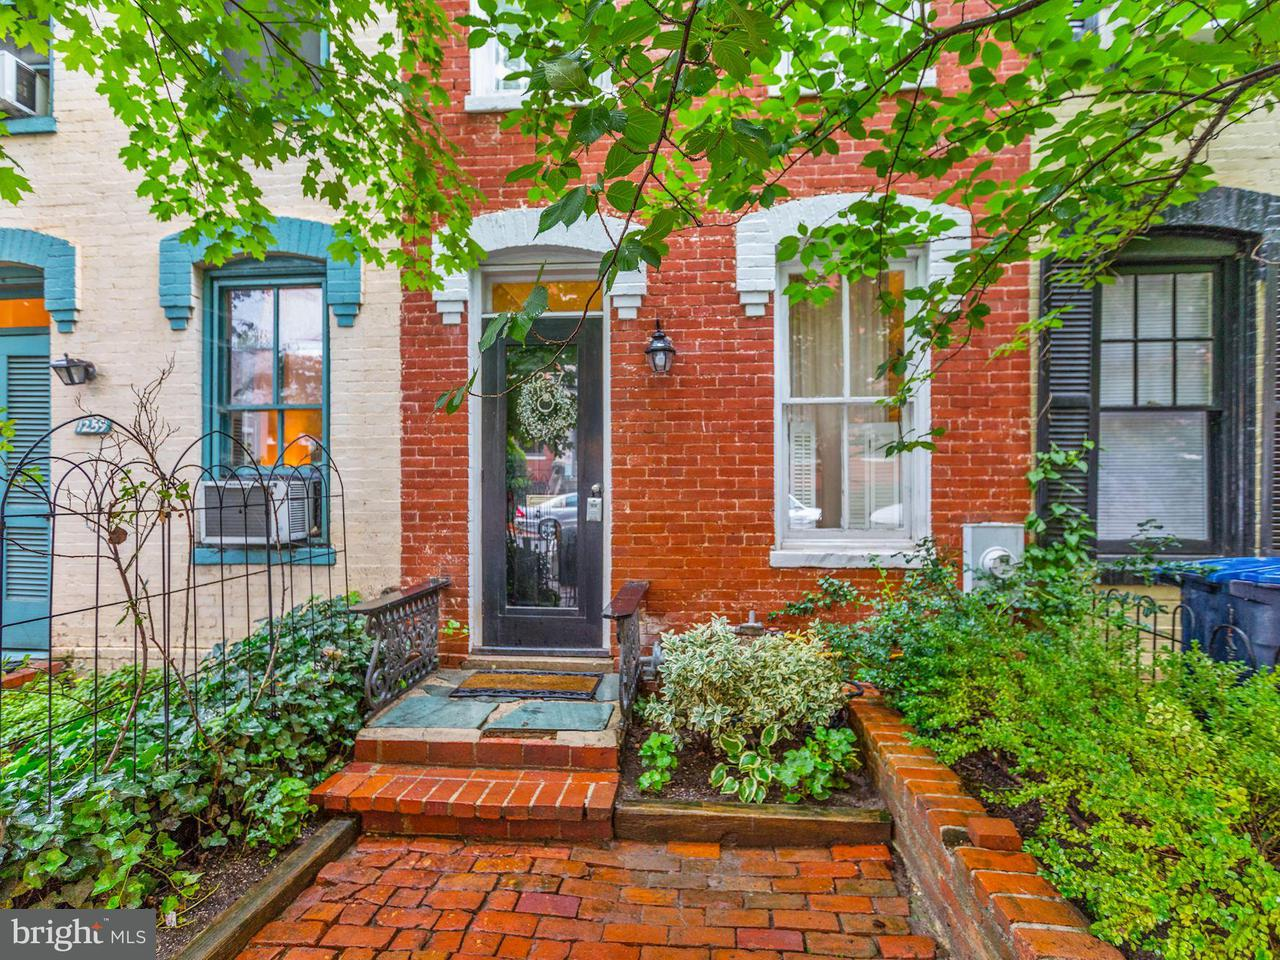 Townhouse for Sale at 1257 35TH ST NW 1257 35TH ST NW Washington, District Of Columbia 20007 United States